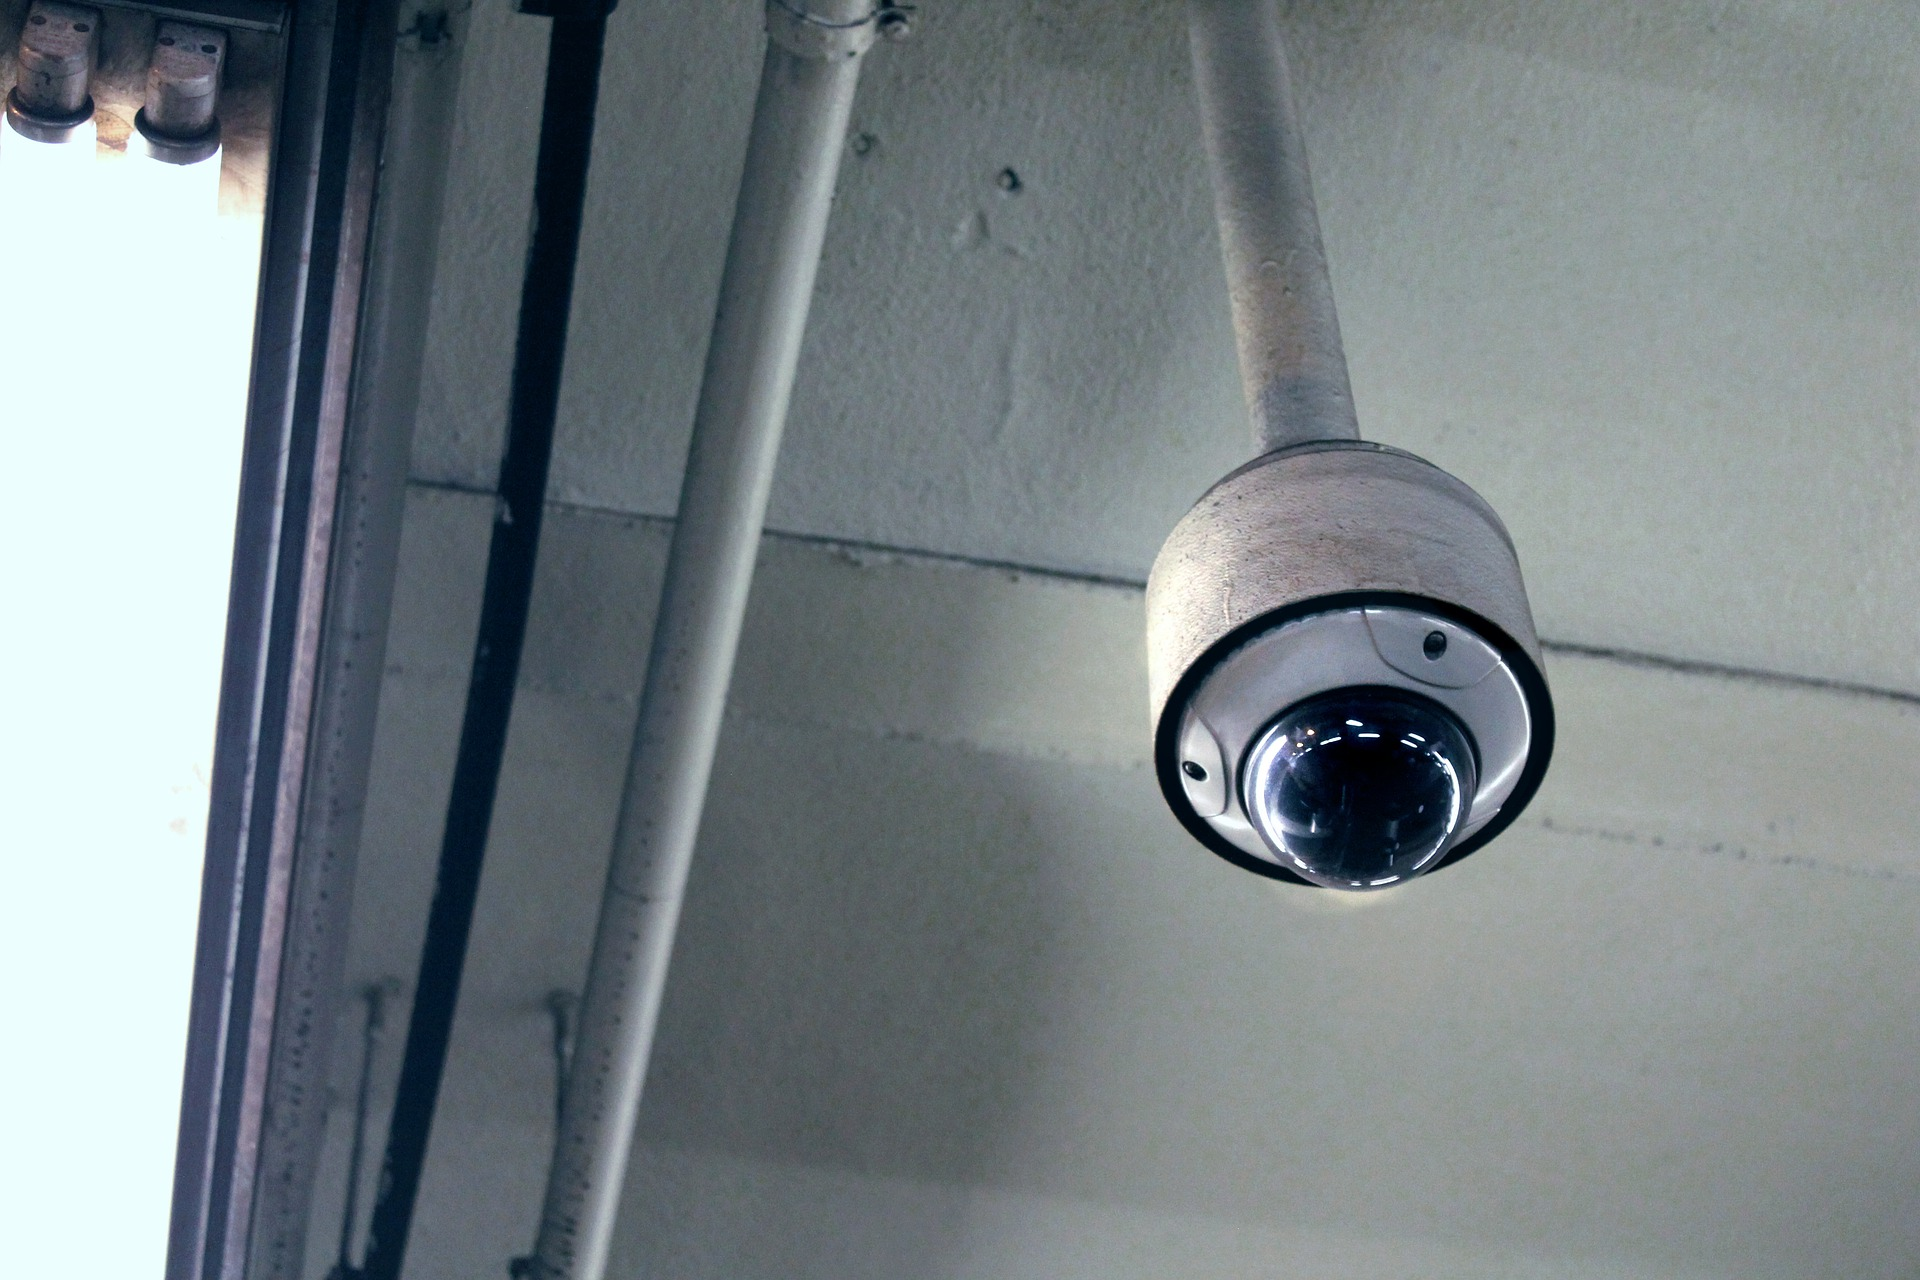 MORE Big Brother is Watching! Geo-Location Tracking: What To Do About It.